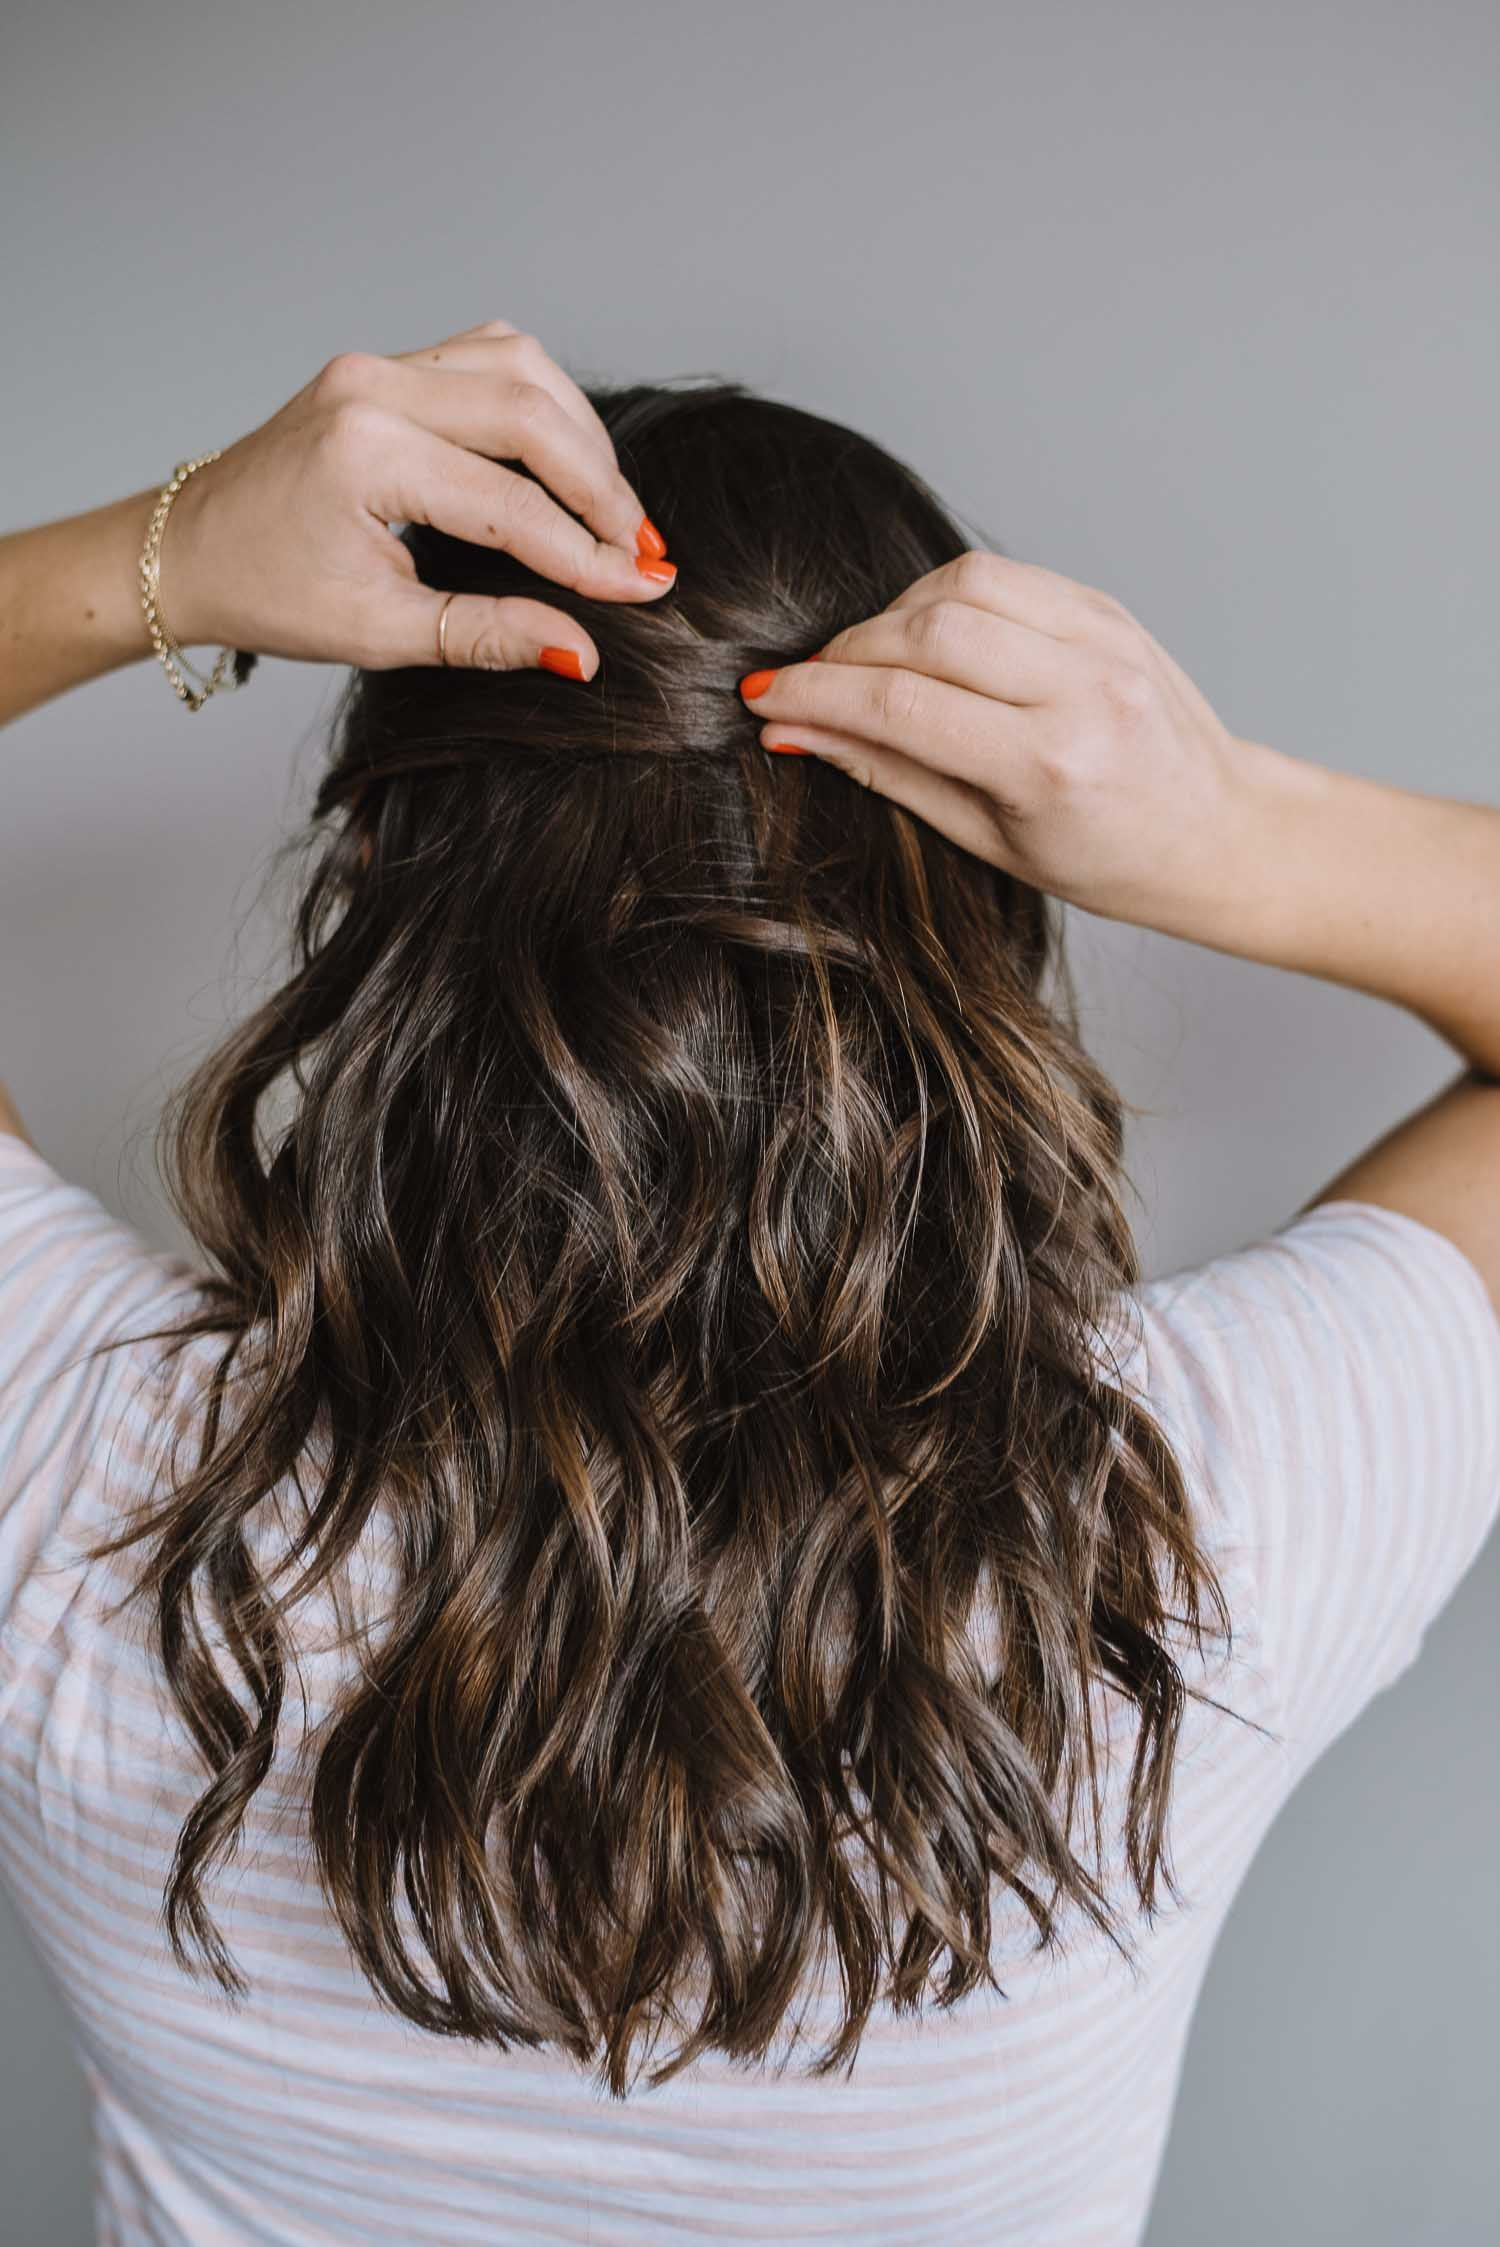 How To Do A Half Up Twist With A Gold Clip Beauty Pinterest